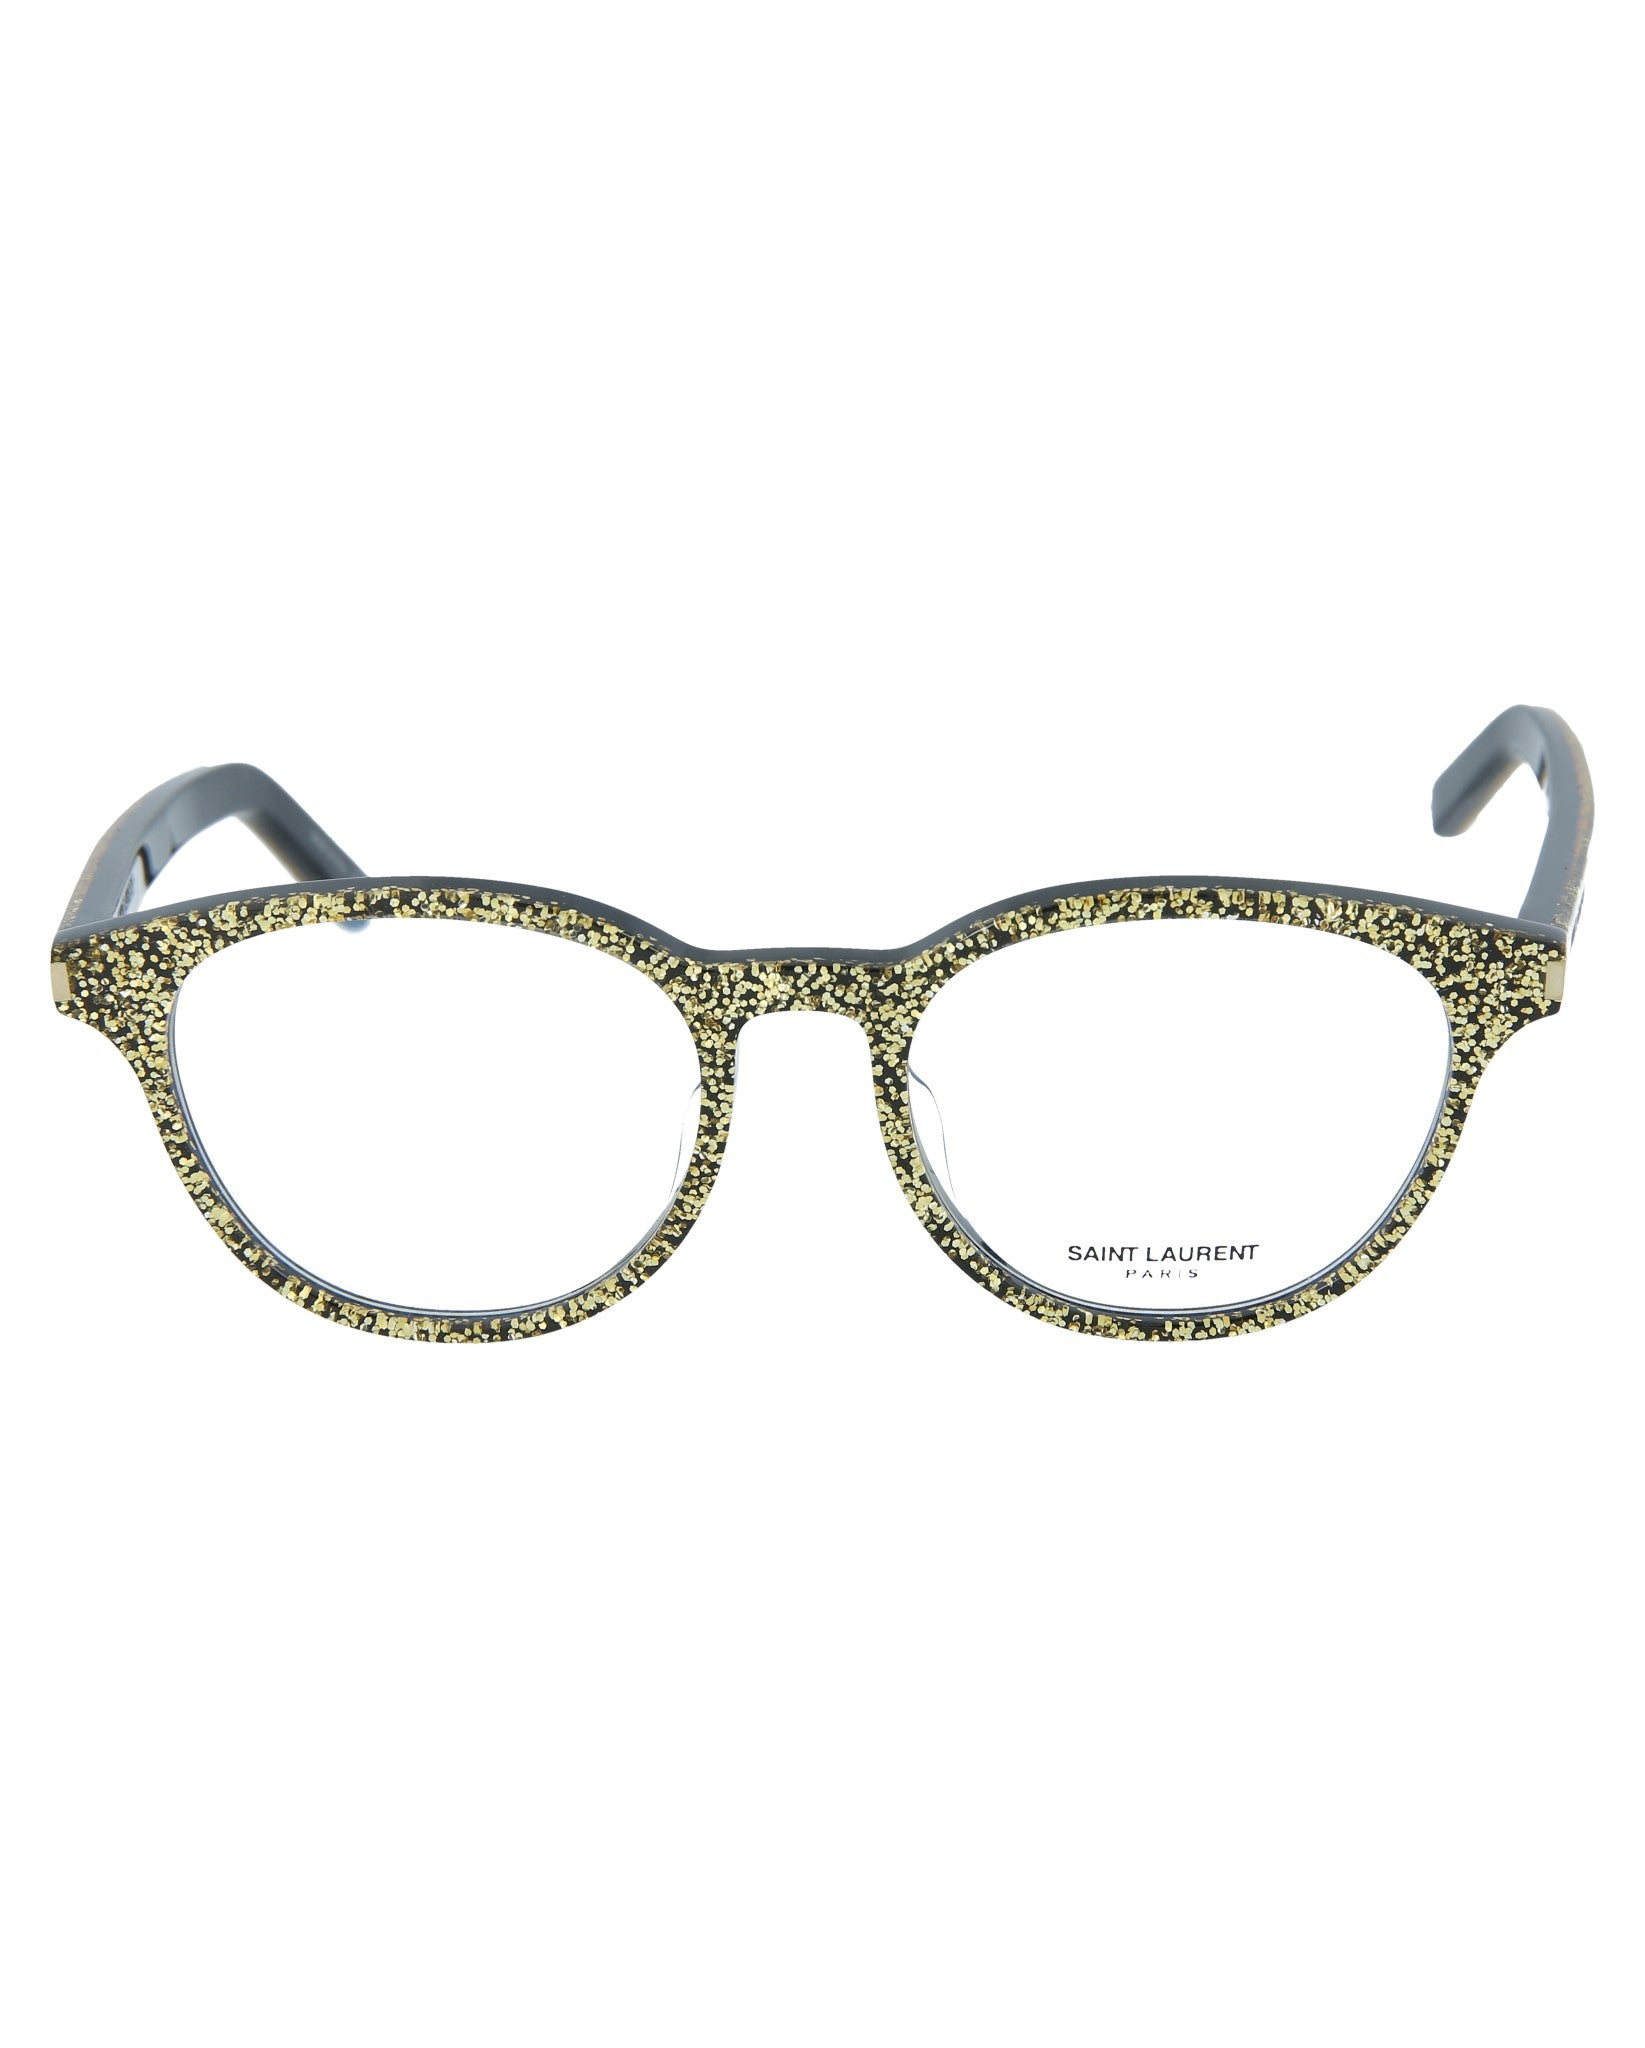 aa402a58f60a Saint Laurent Unisex Square/Rectangle Optical Frames | Madaluxe ...